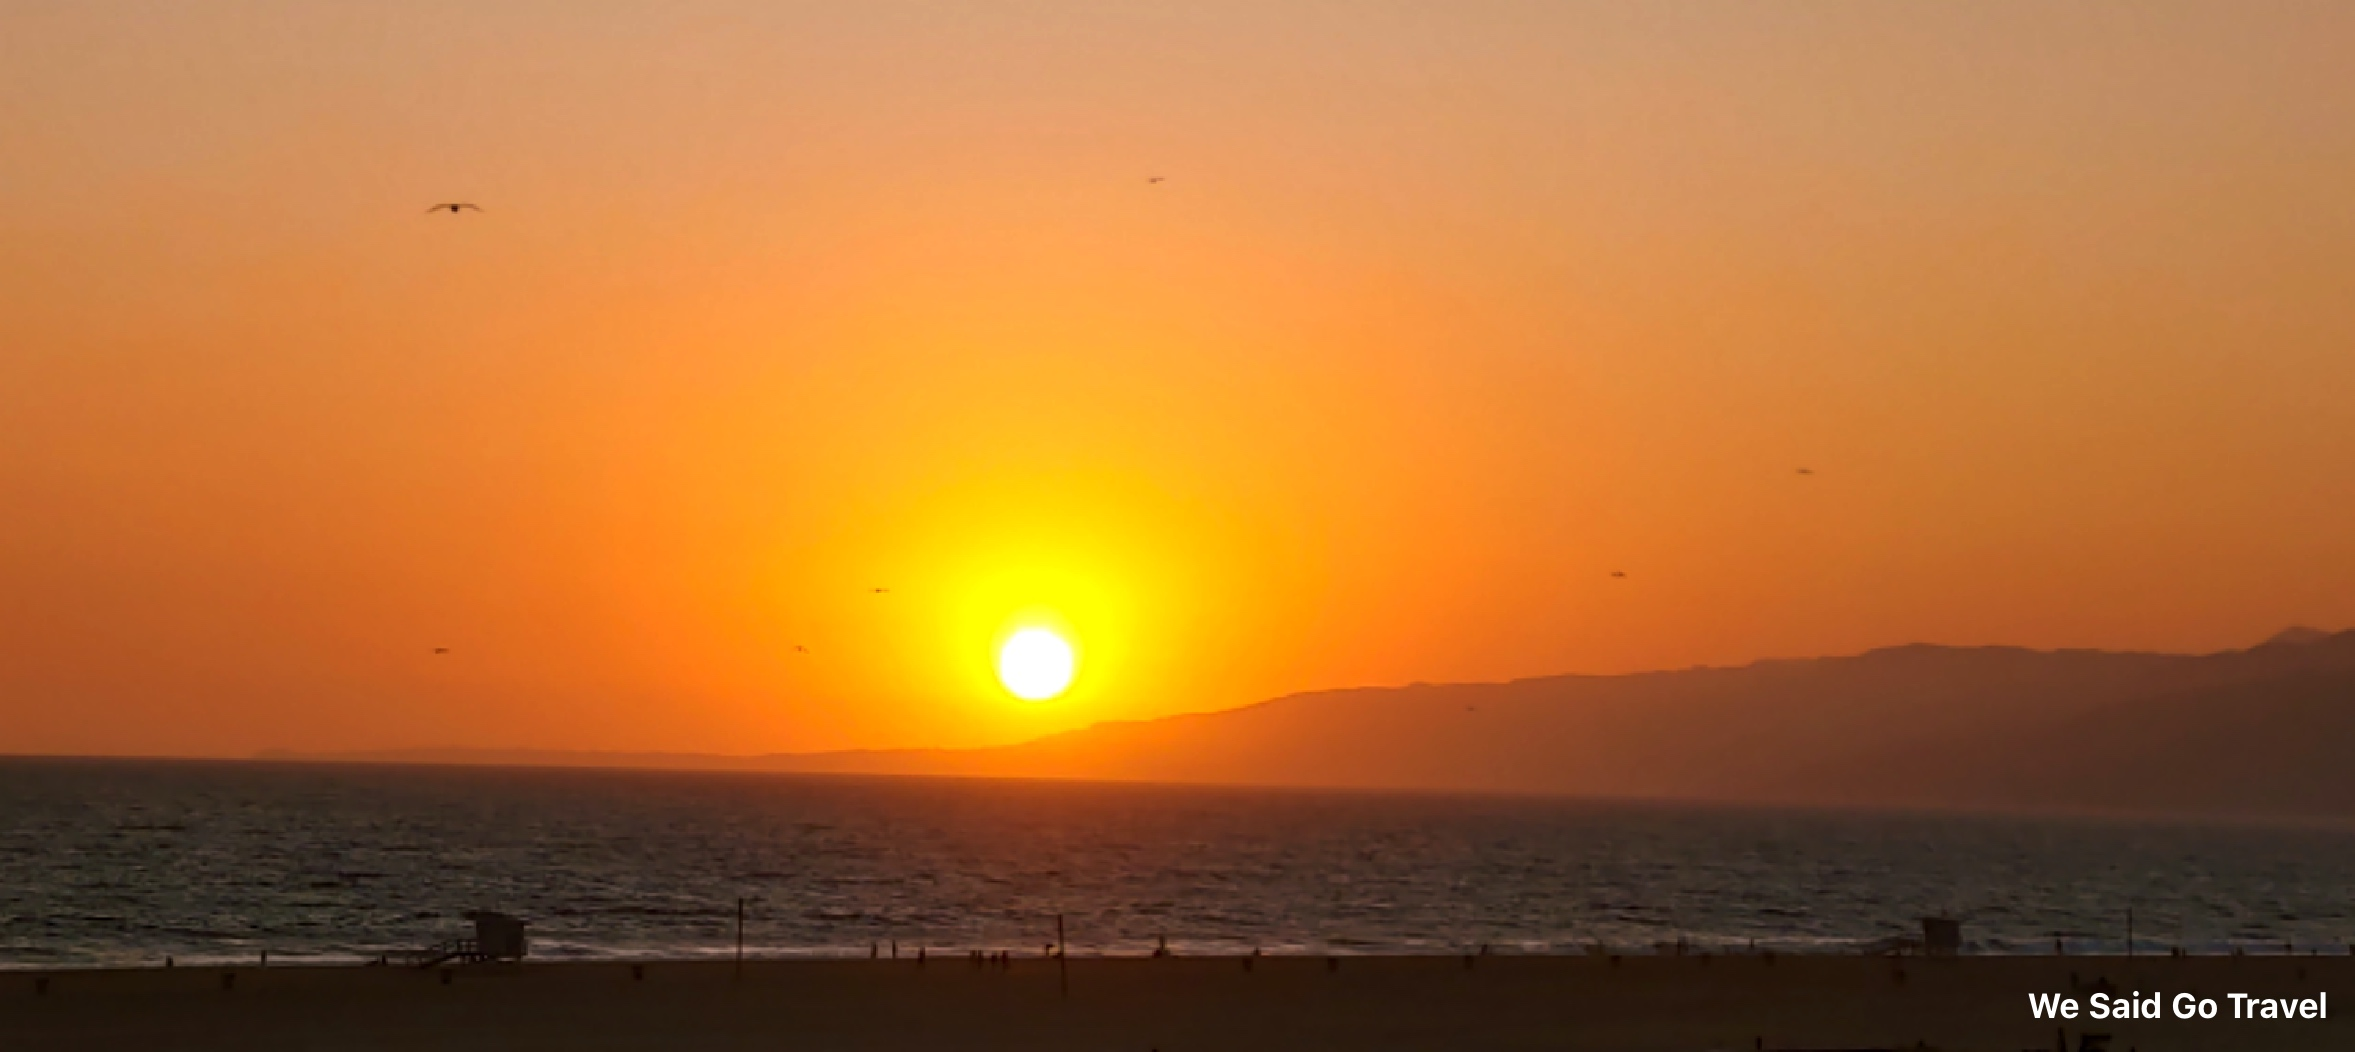 Sunset in Santa Monica by Lisa Niver Sept 11 2019